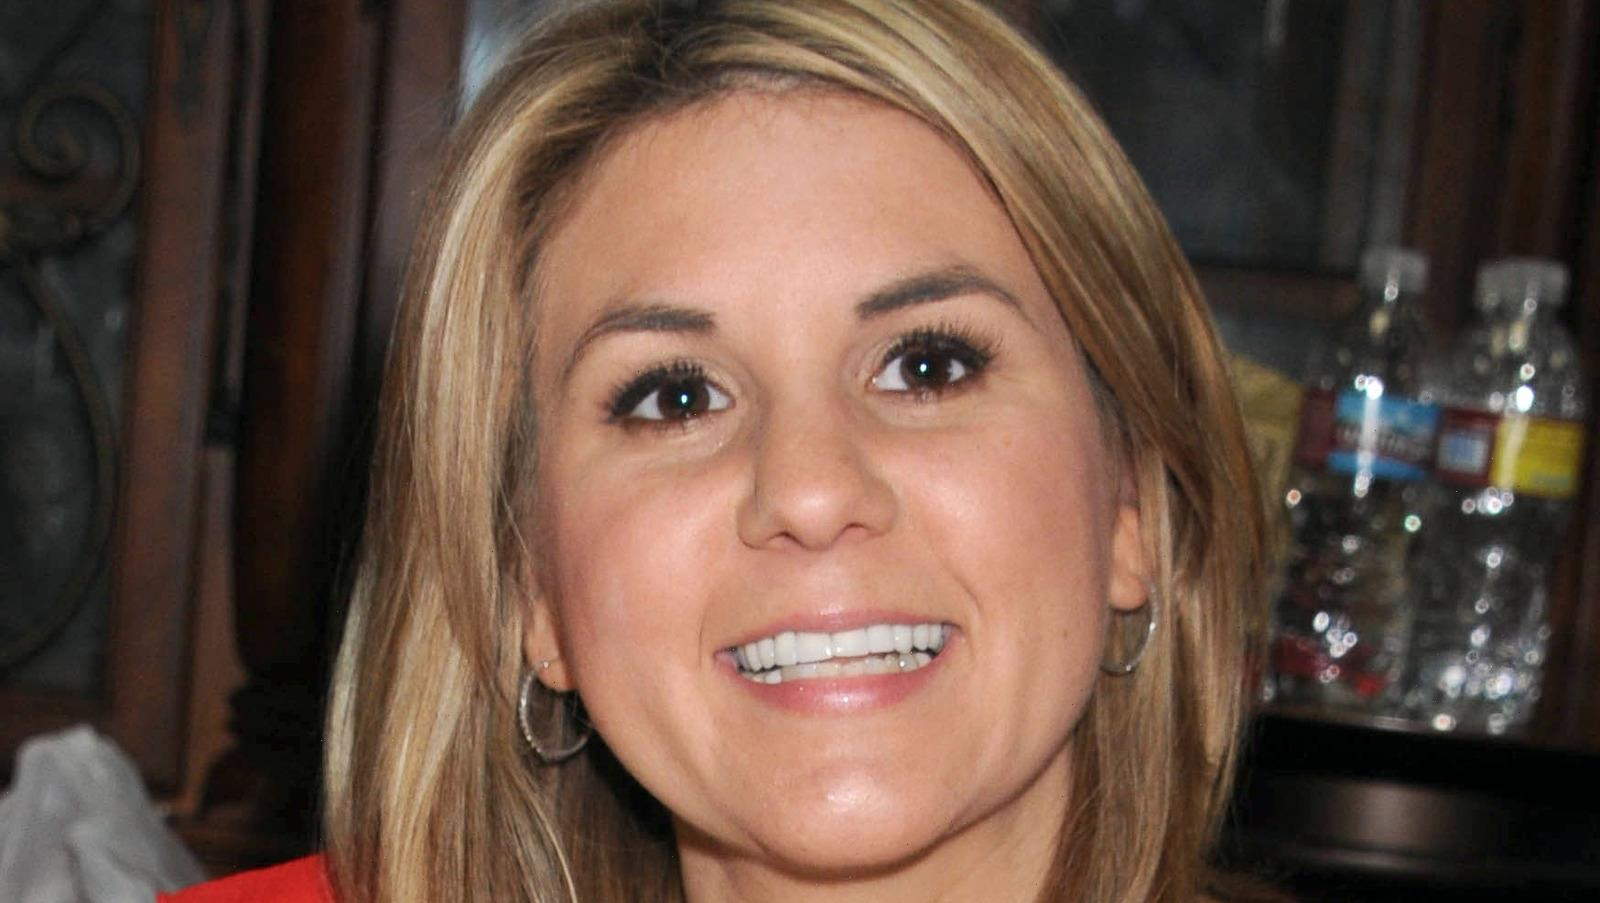 Storage Wars: 16 Brandi Passante Facts You May Not Know